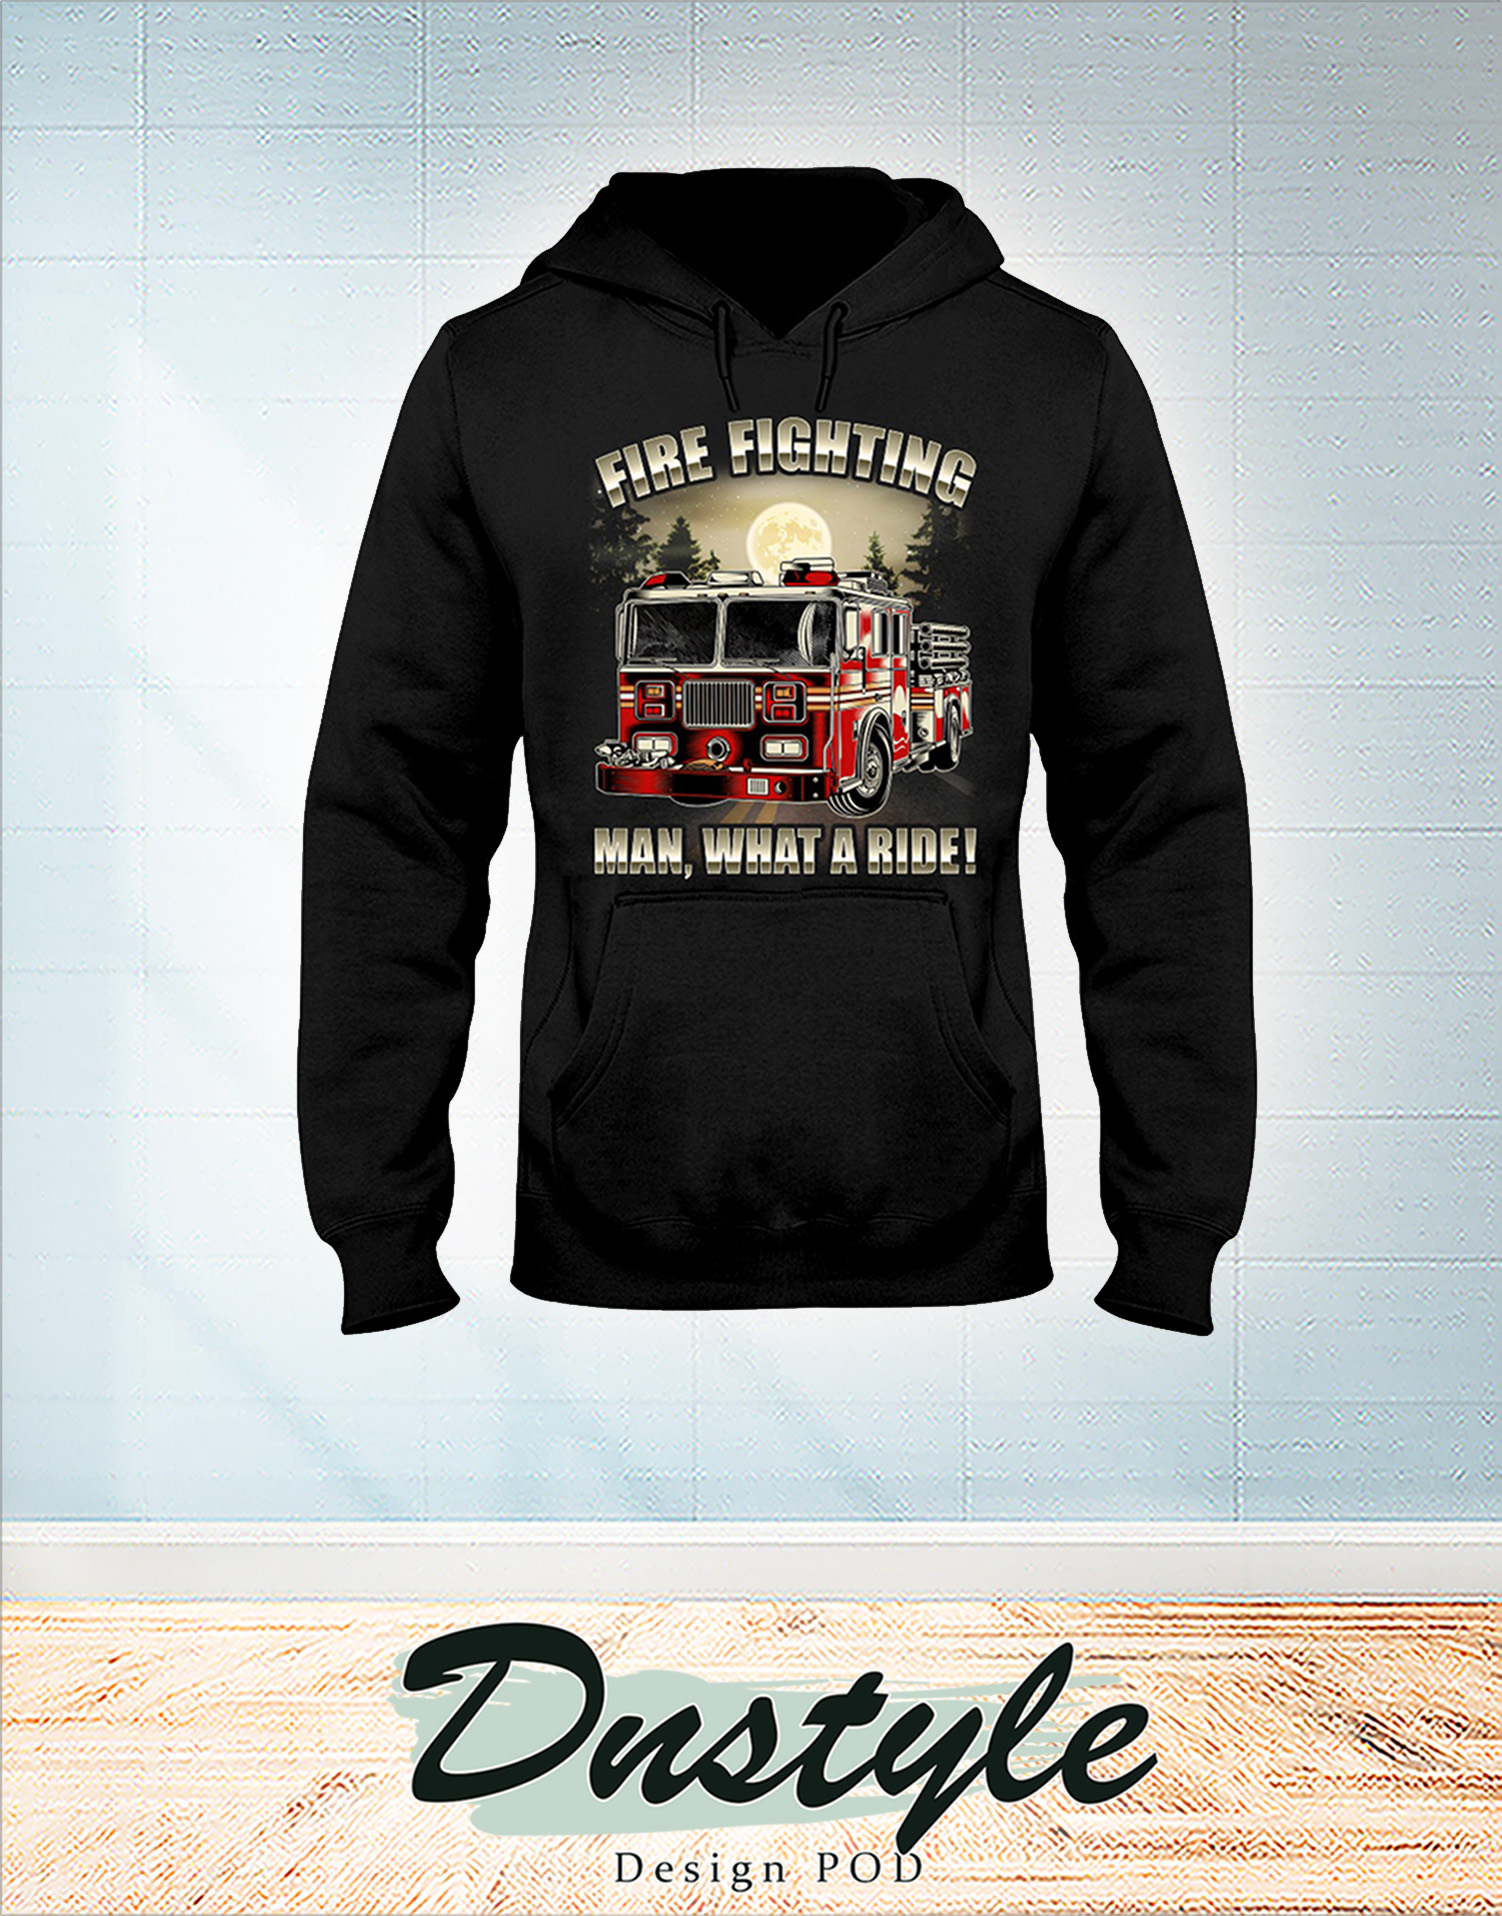 Fire fighting man what a ride hoodie